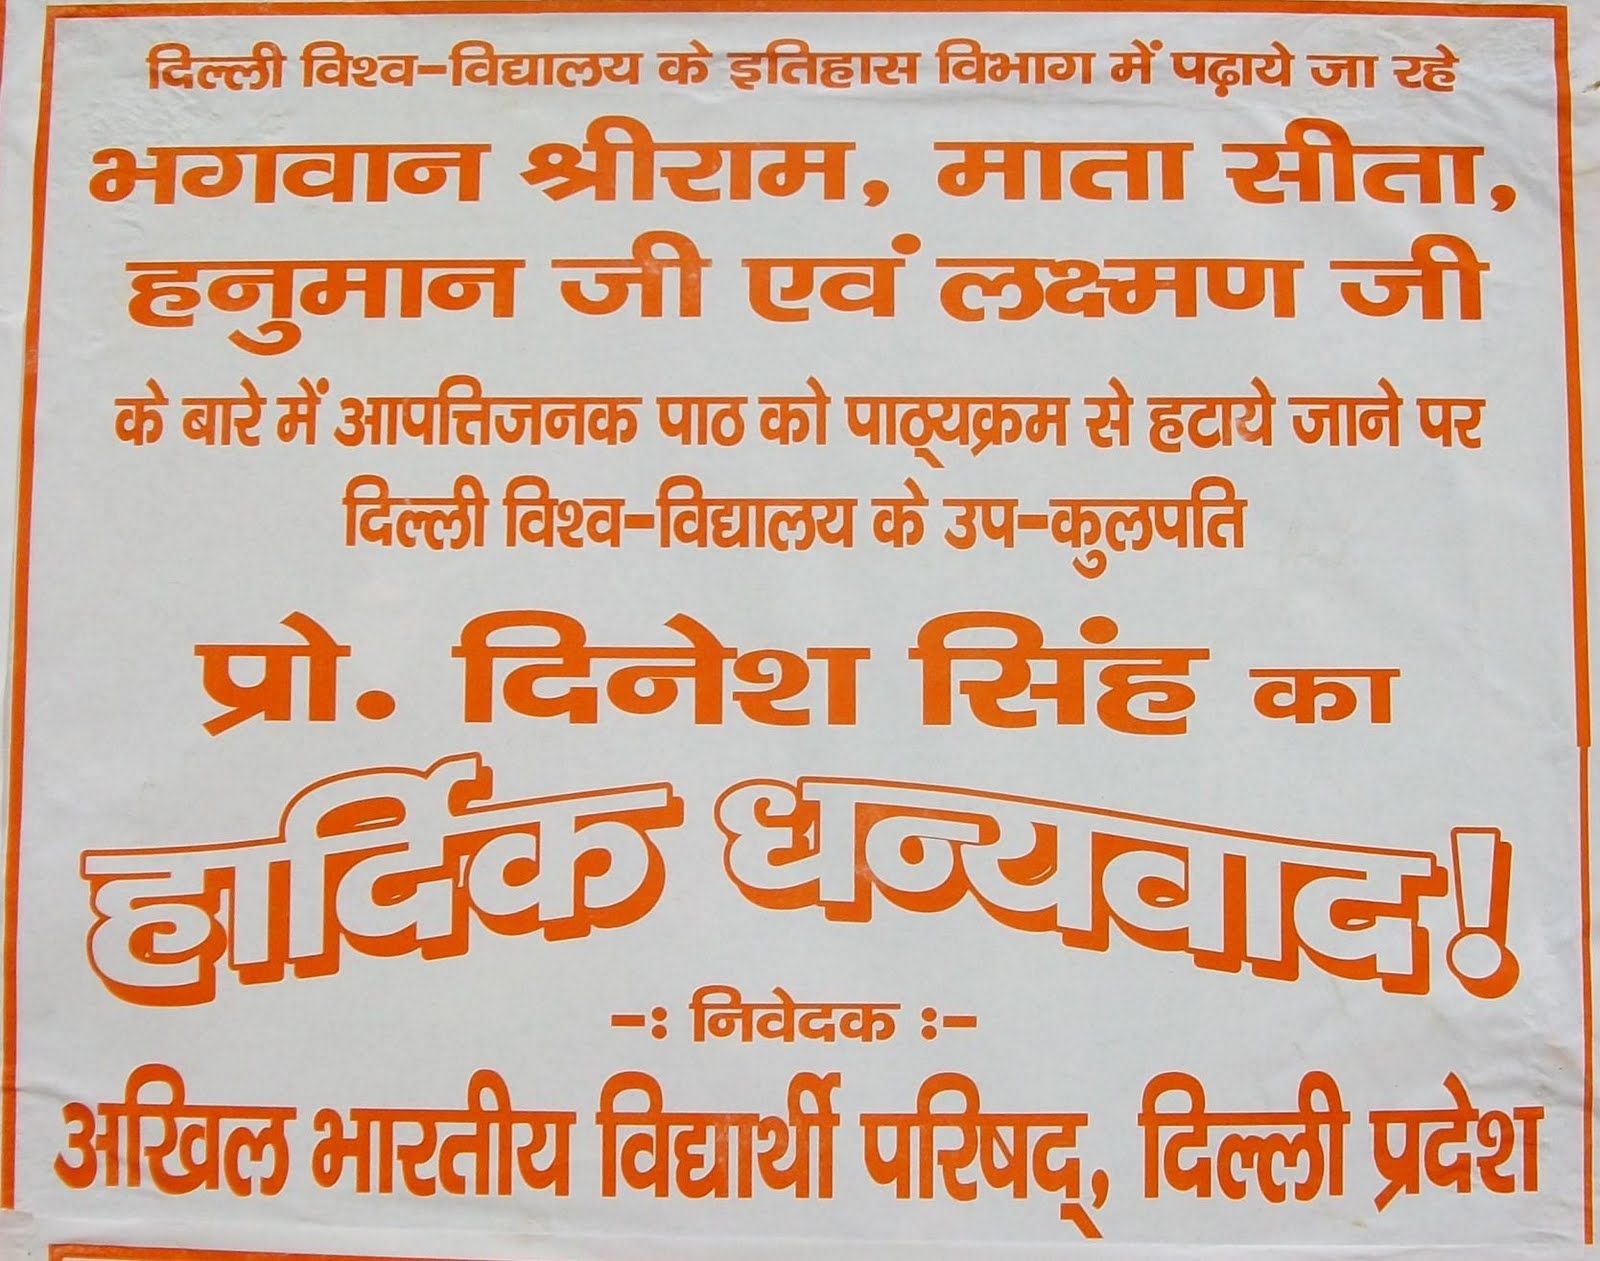 abvp the right wing students organisation in hindi congratulating the. 1600 x 1261.Slogans On Indian Festivals In Hindi Language